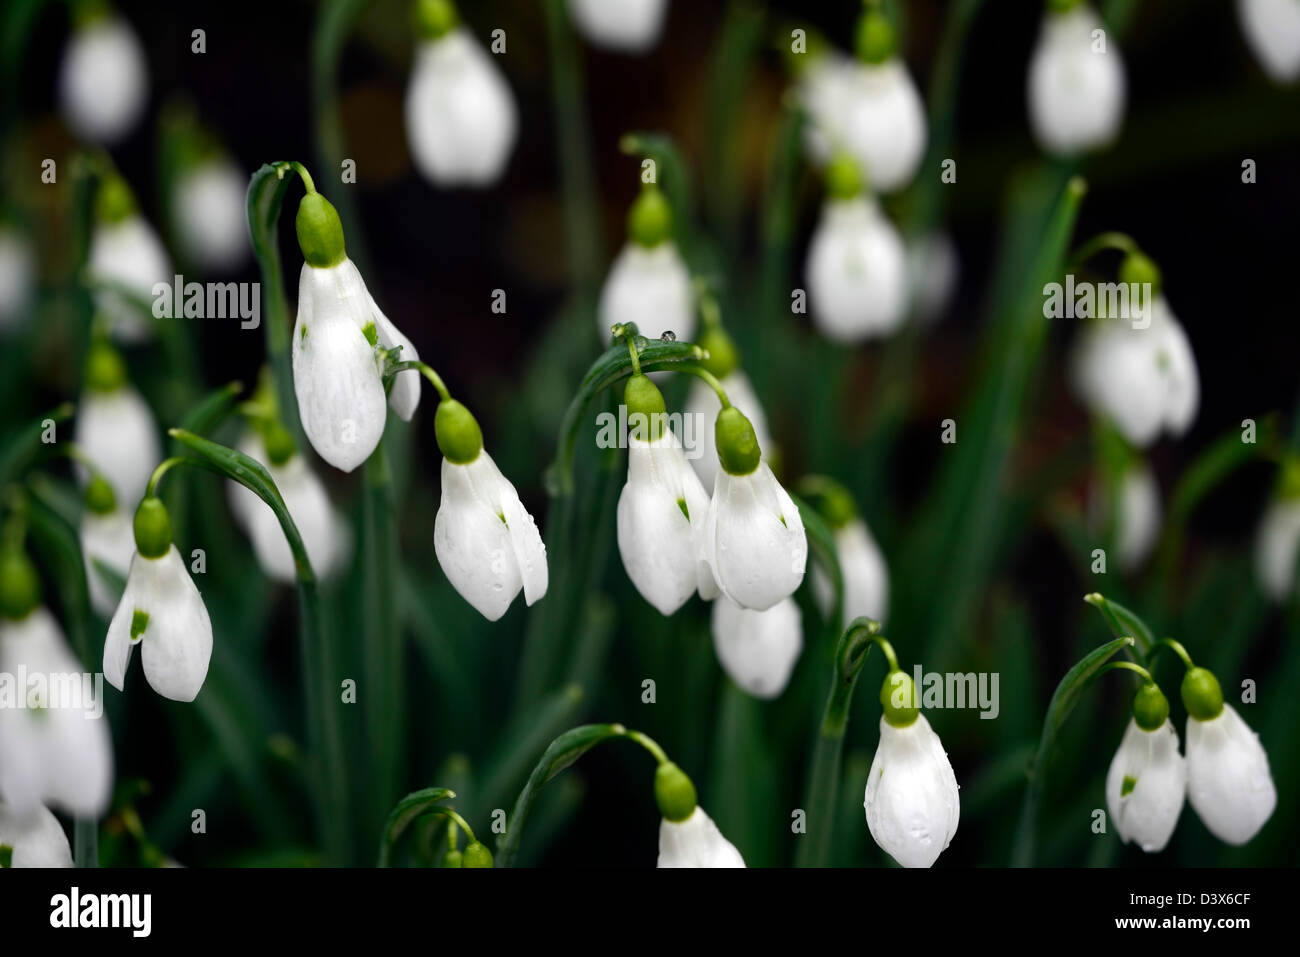 galanthus winifrede mathias snowdrop snowdrops winter closeup plant portraits white green markings flowers blooms - Stock Image